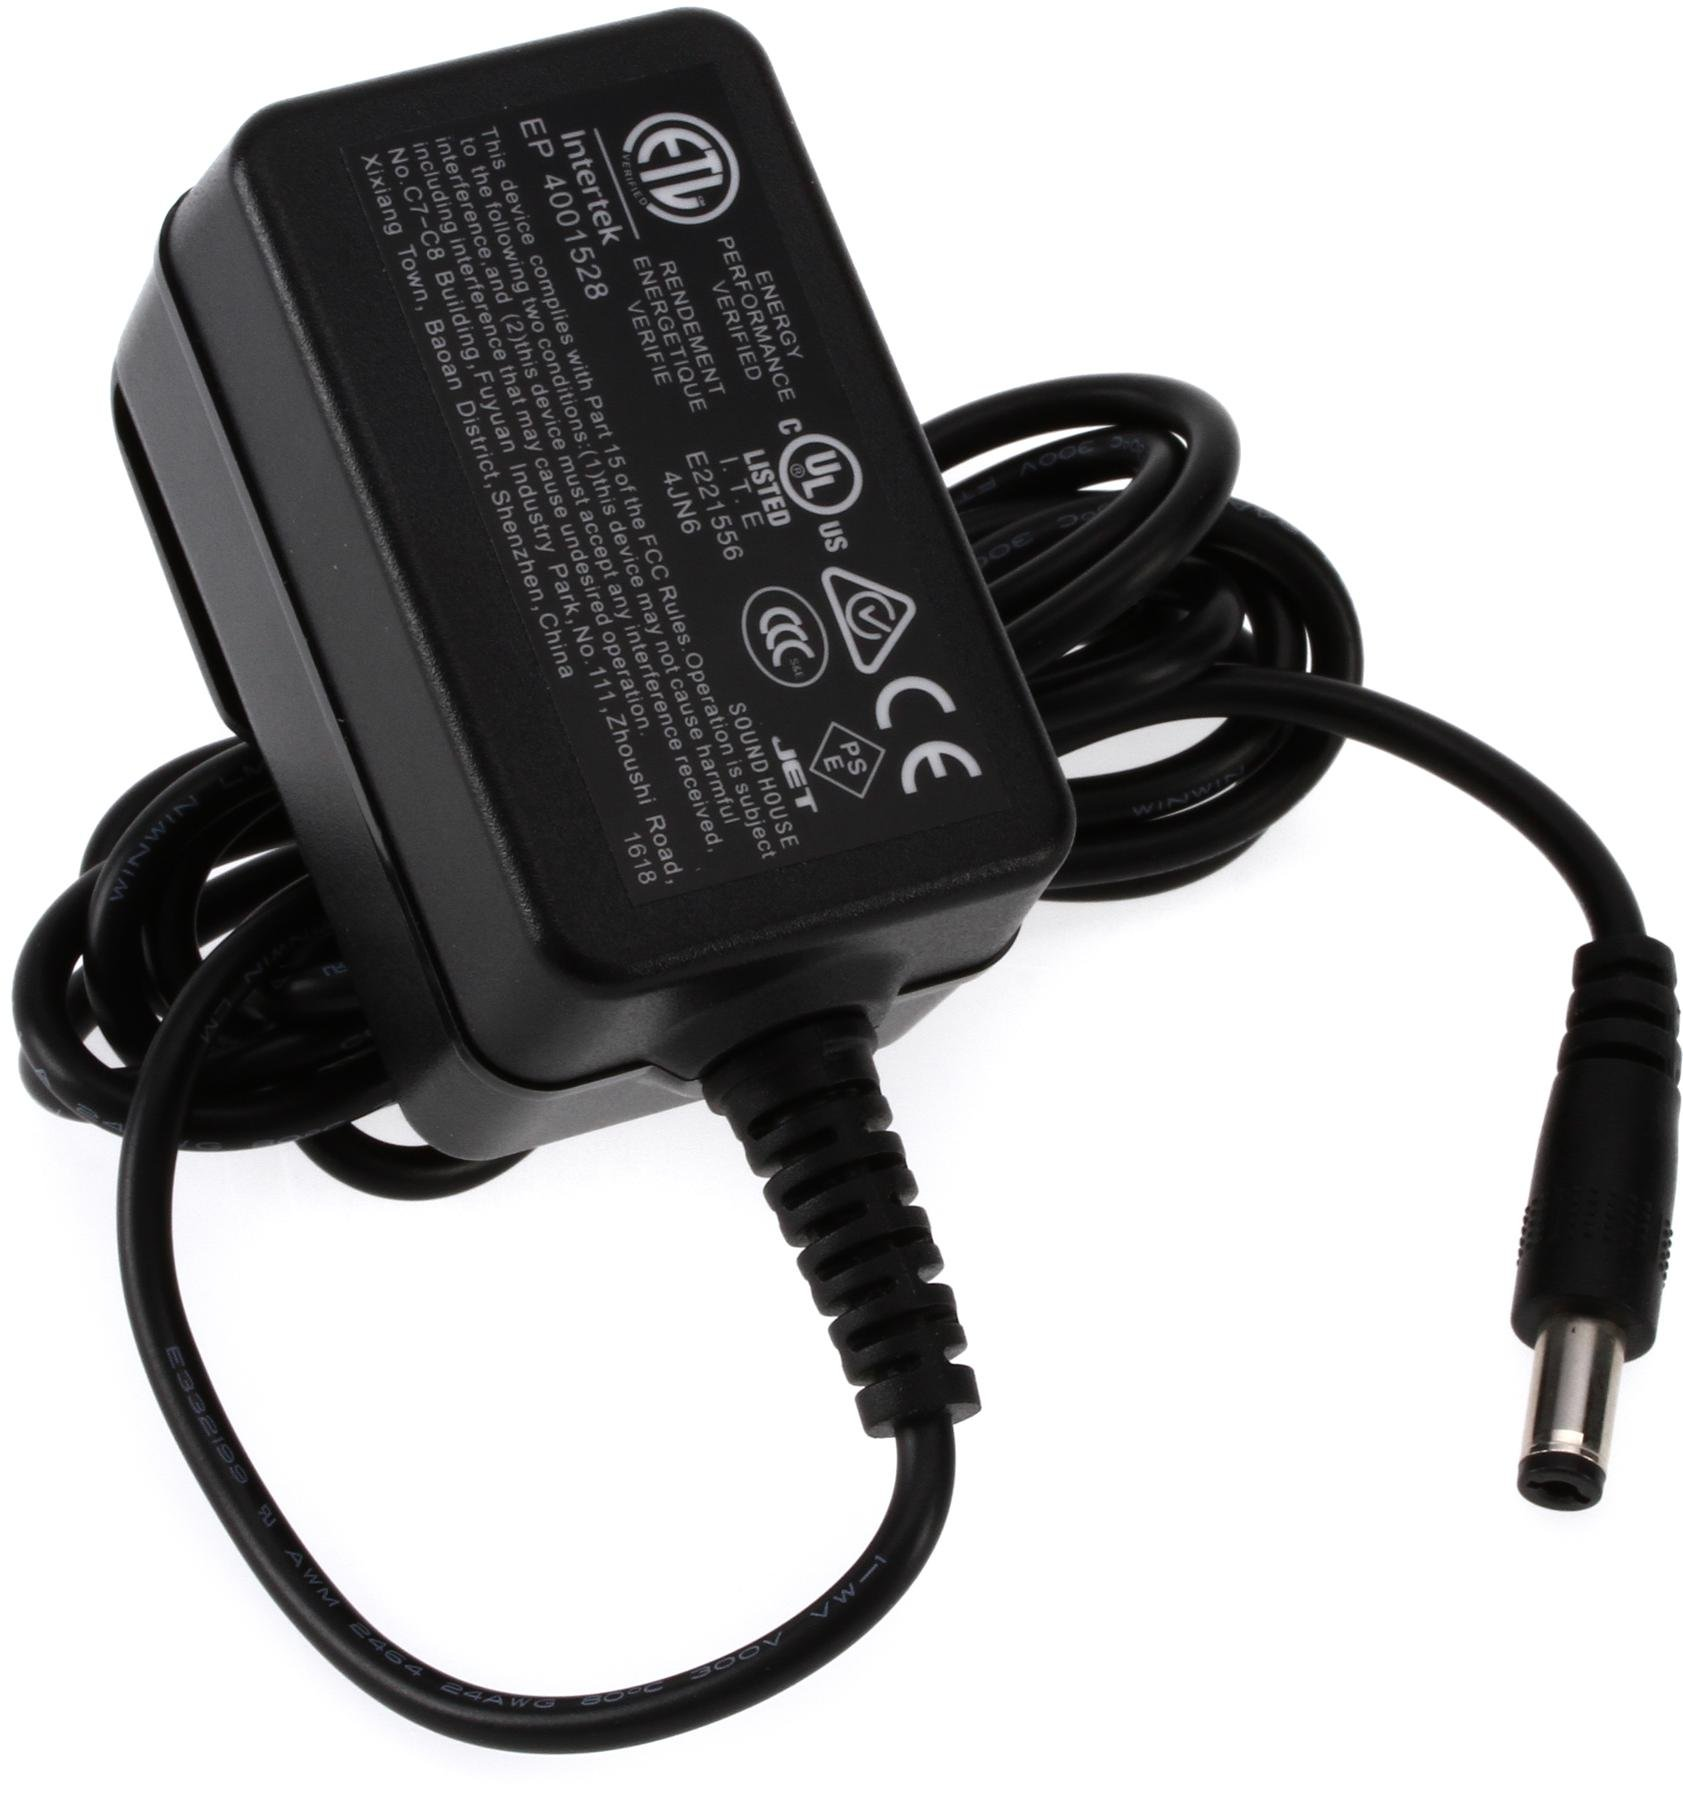 Tc Helicon Mic Mechanic 2 Sweetwater Typical Mains Power Plug Electrical Pinterest Plugs 9v Supply